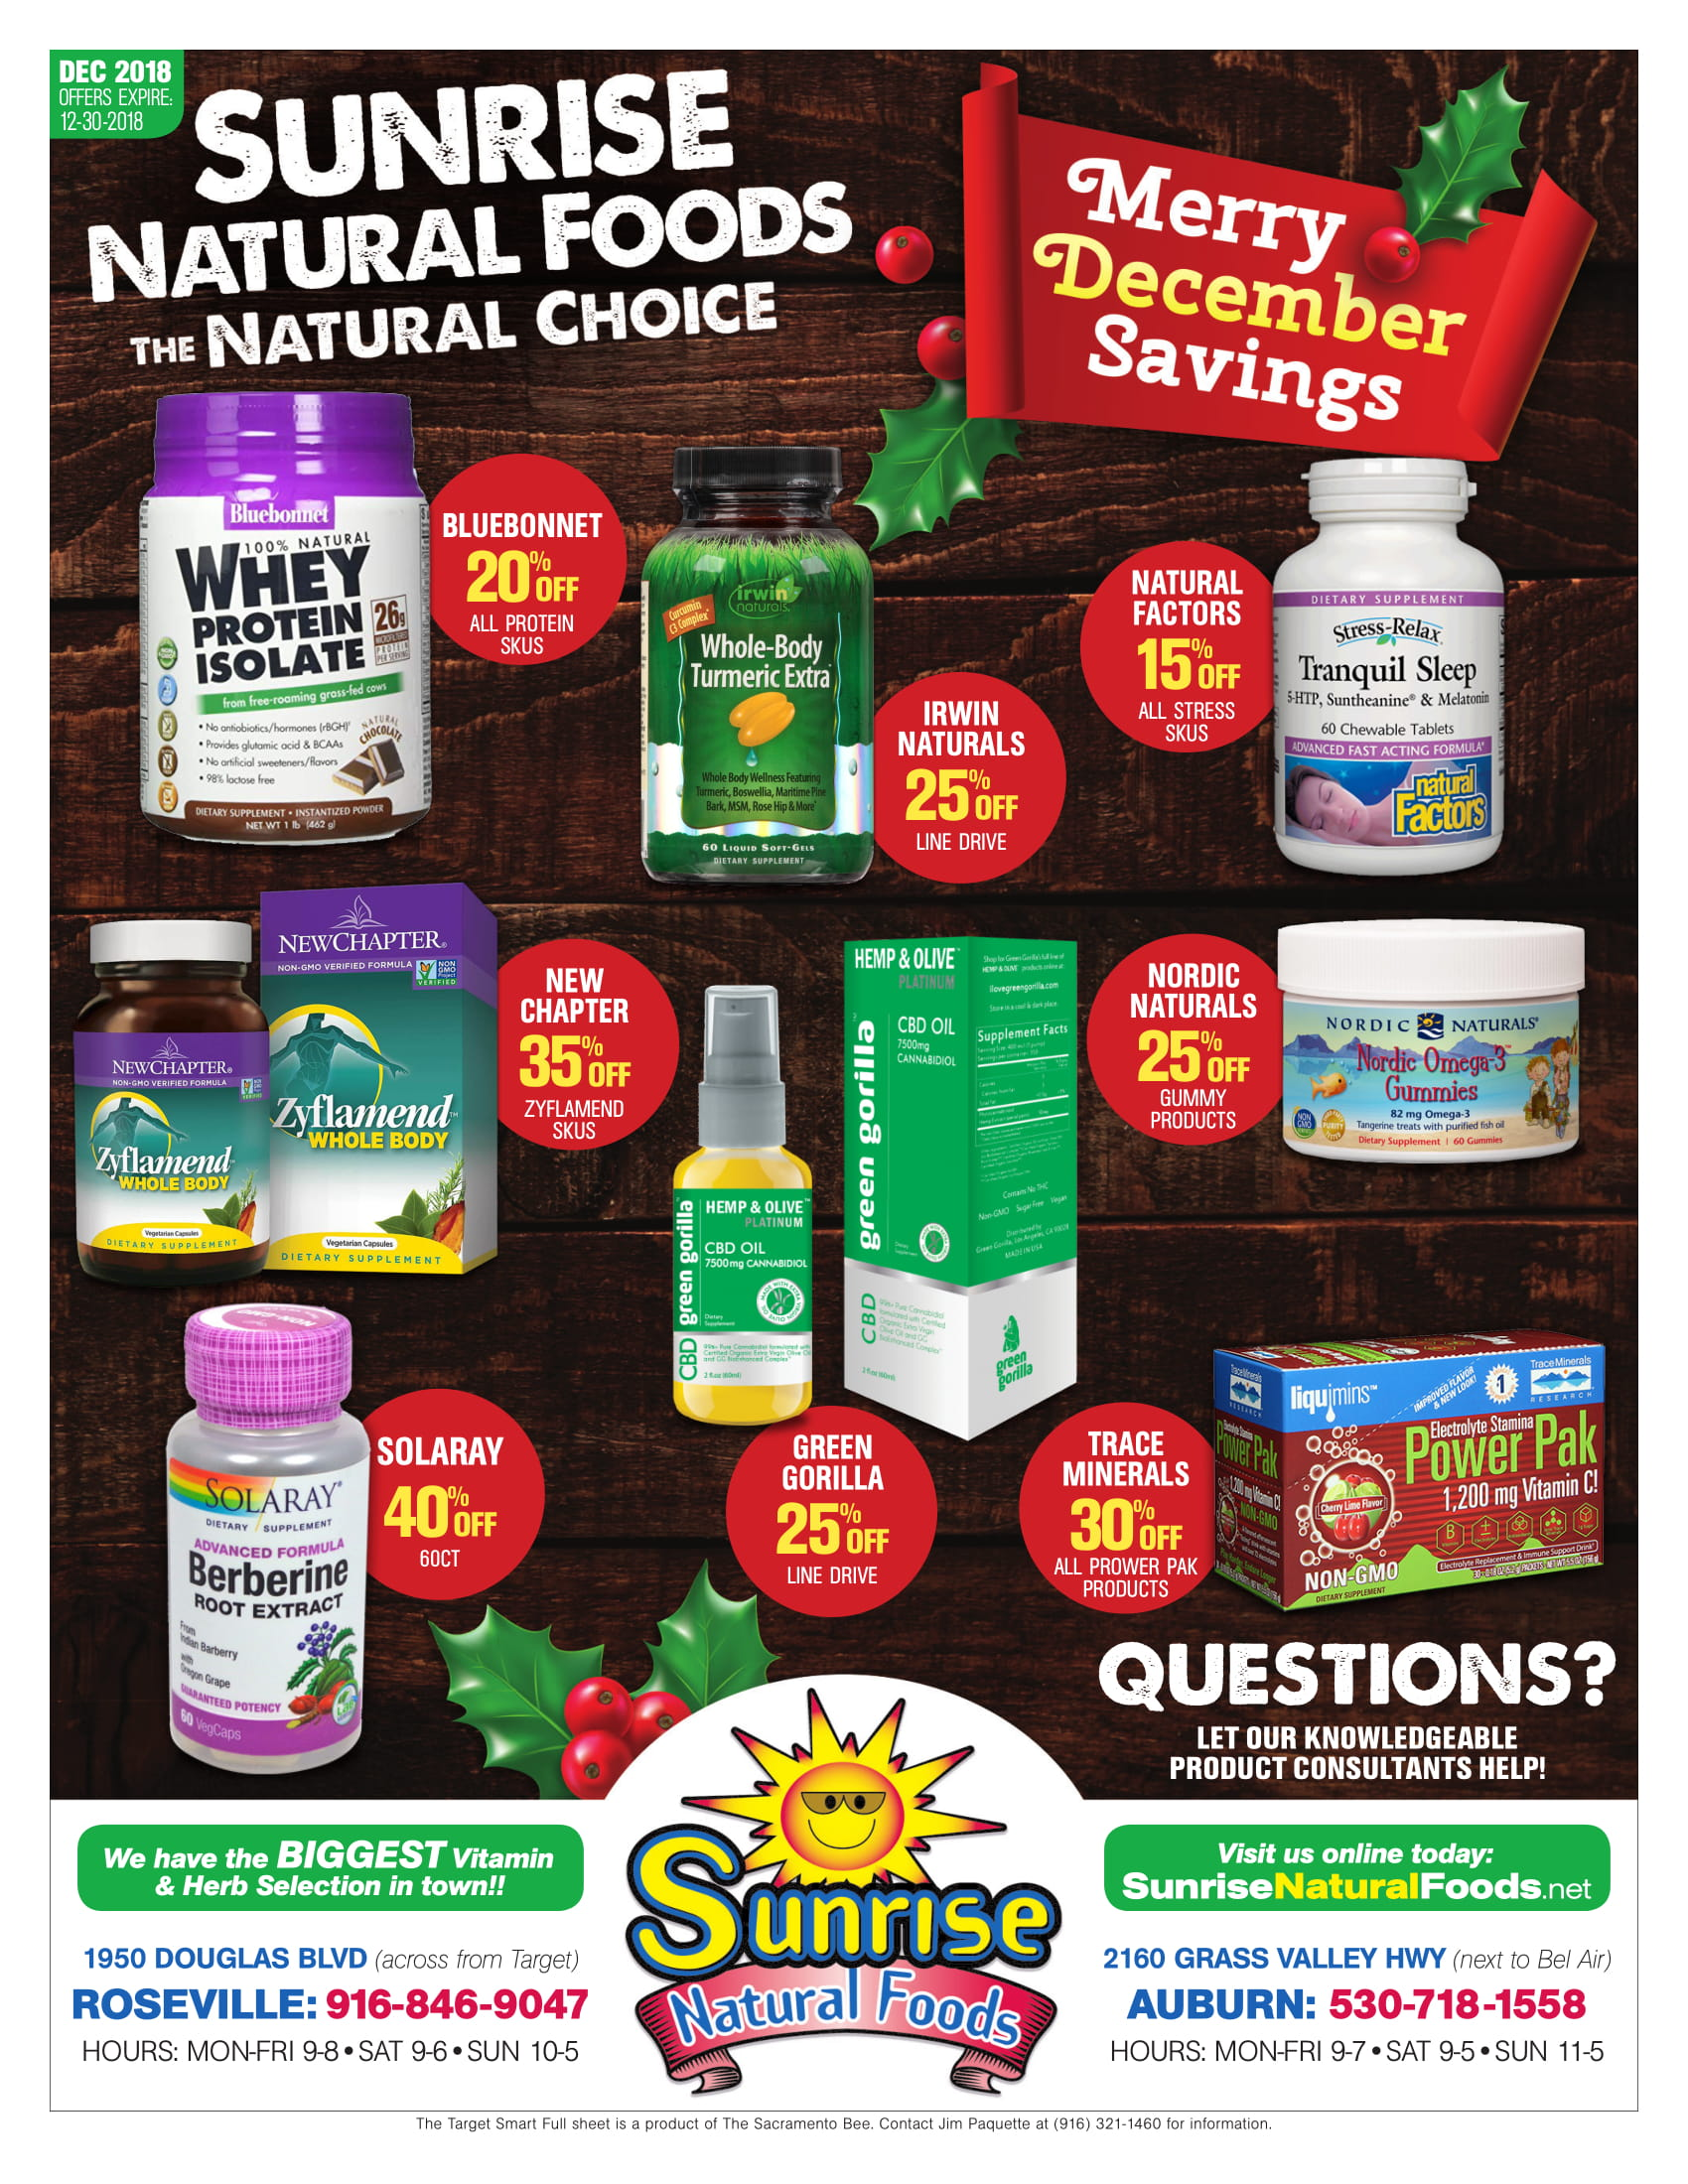 Sunrise Natural Foods December 2018 Ad Page 1